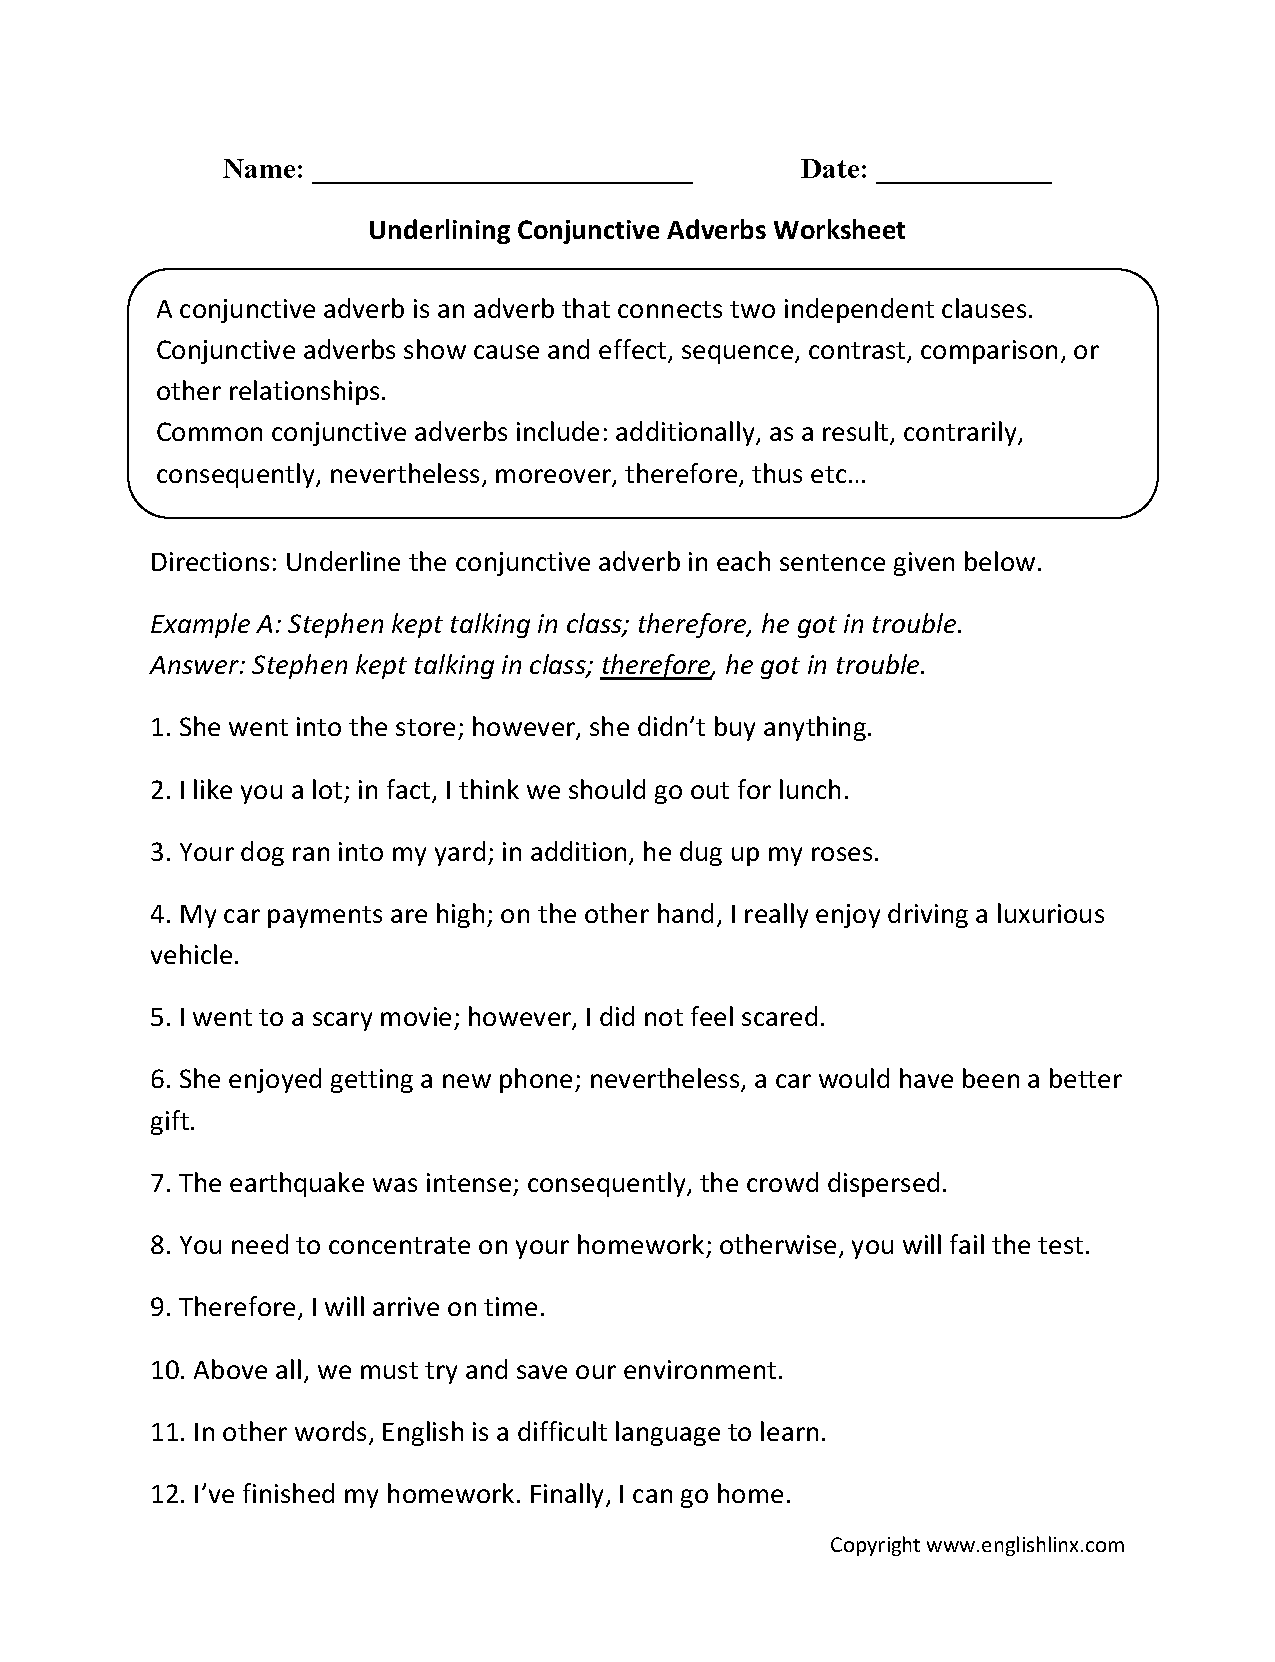 Weirdmailus  Marvellous Englishlinxcom  Conjunctions Worksheets With Great Worksheet With Appealing Area Of Quadrilateral Worksheet Also Substance Abuse Worksheet In Addition Drawing Worksheet And Map Worksheets For First Grade As Well As Math Angles Worksheet Additionally High School Spelling Worksheets From Englishlinxcom With Weirdmailus  Great Englishlinxcom  Conjunctions Worksheets With Appealing Worksheet And Marvellous Area Of Quadrilateral Worksheet Also Substance Abuse Worksheet In Addition Drawing Worksheet From Englishlinxcom